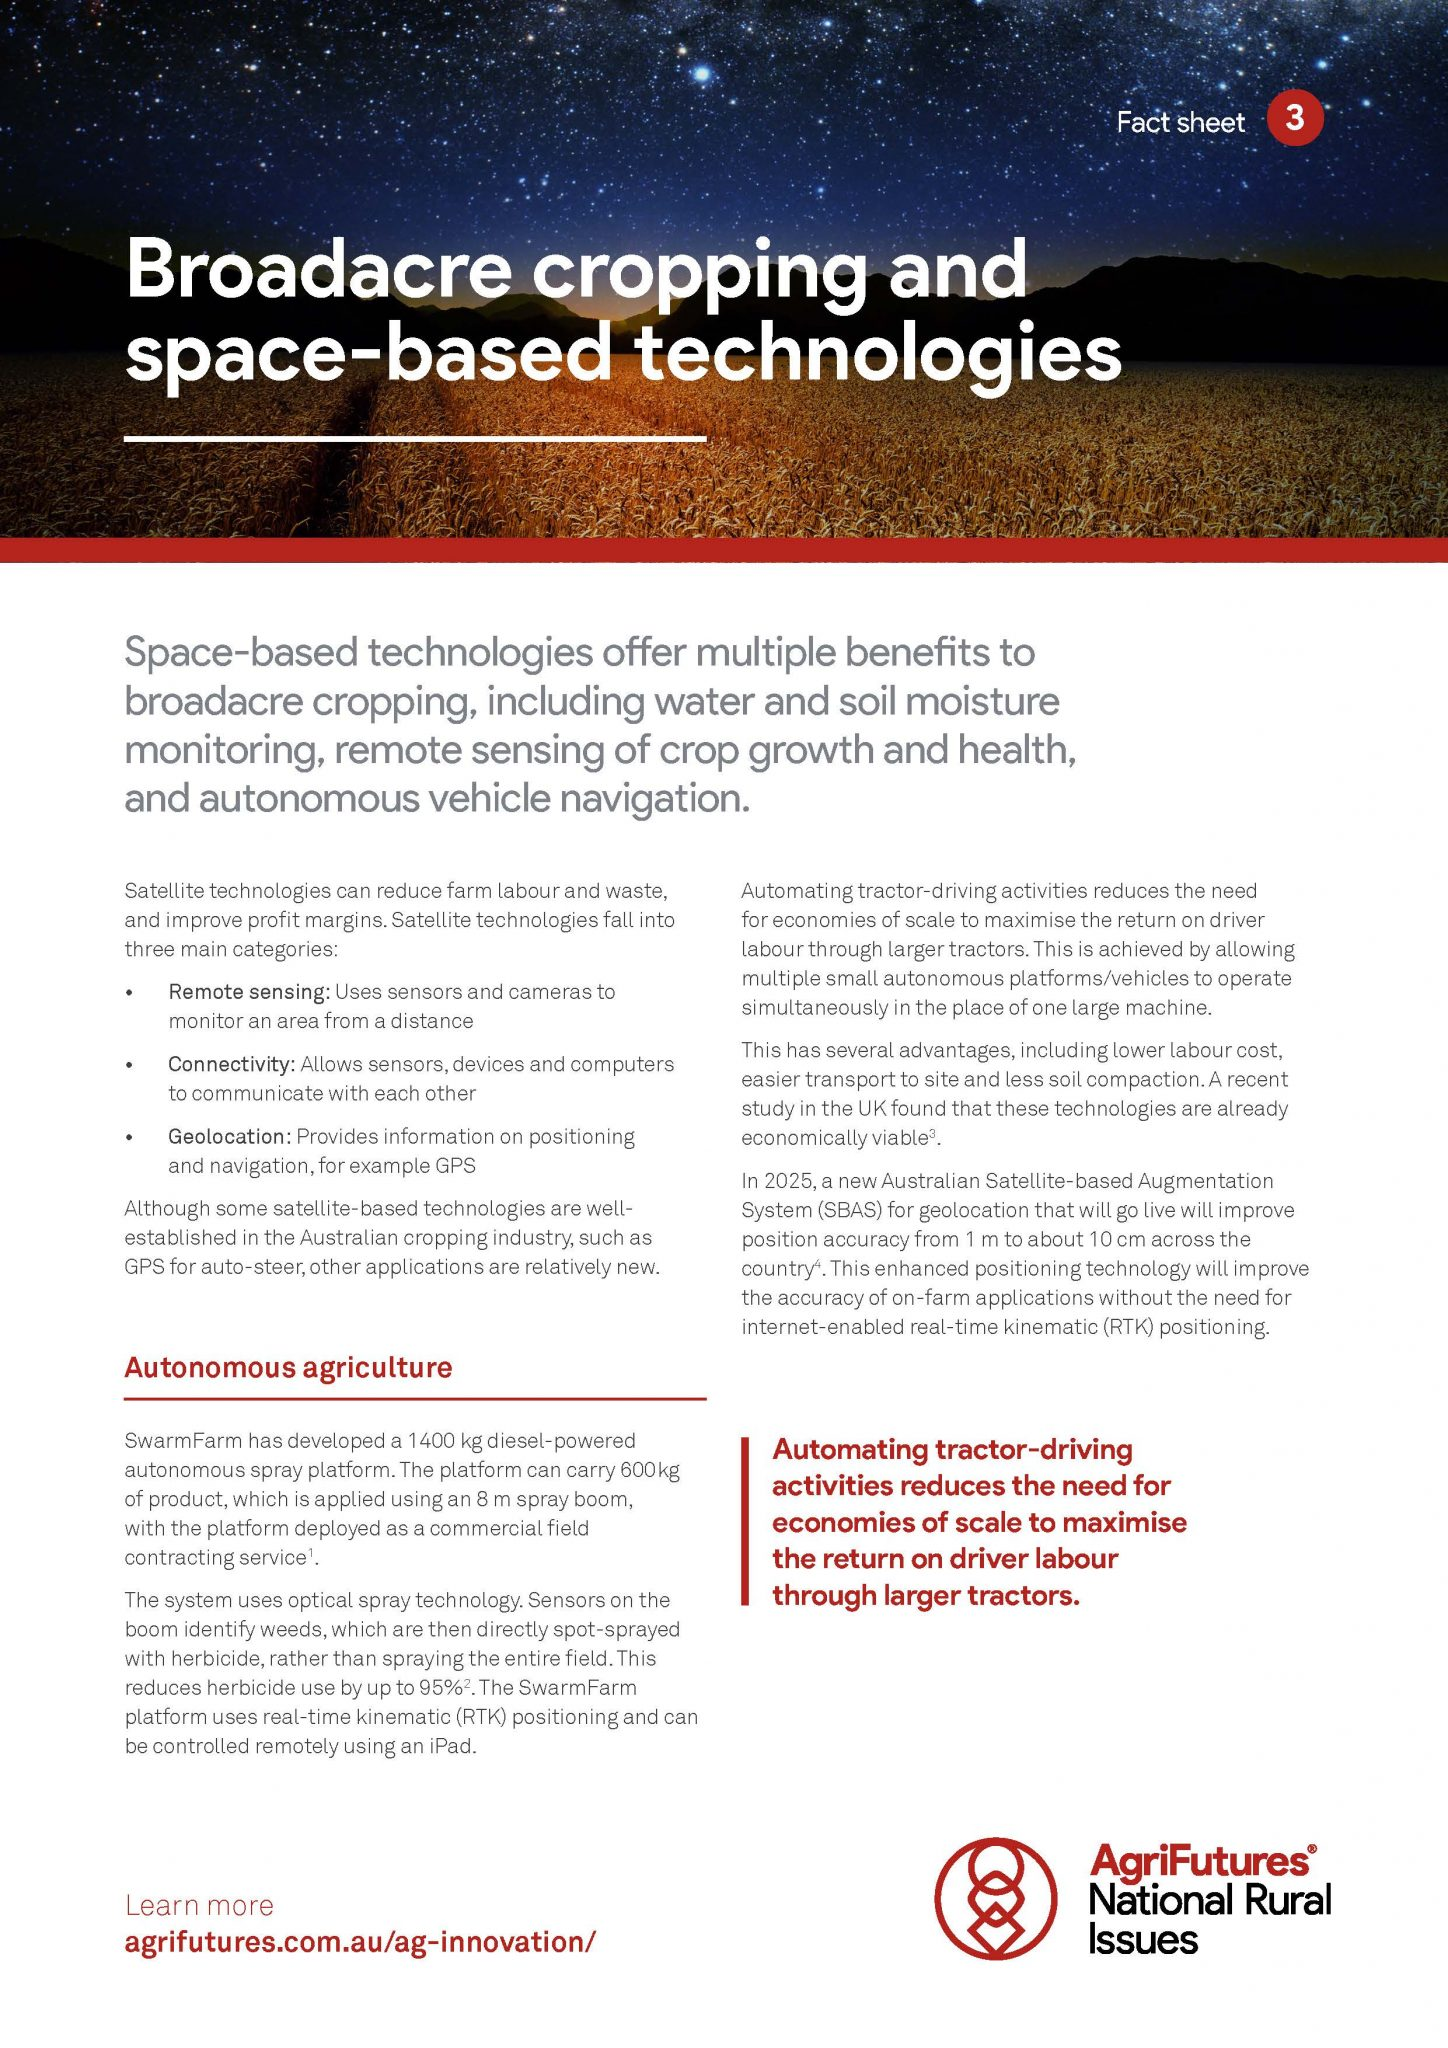 Fact sheet: Broadacre cropping and space-based technologies - image